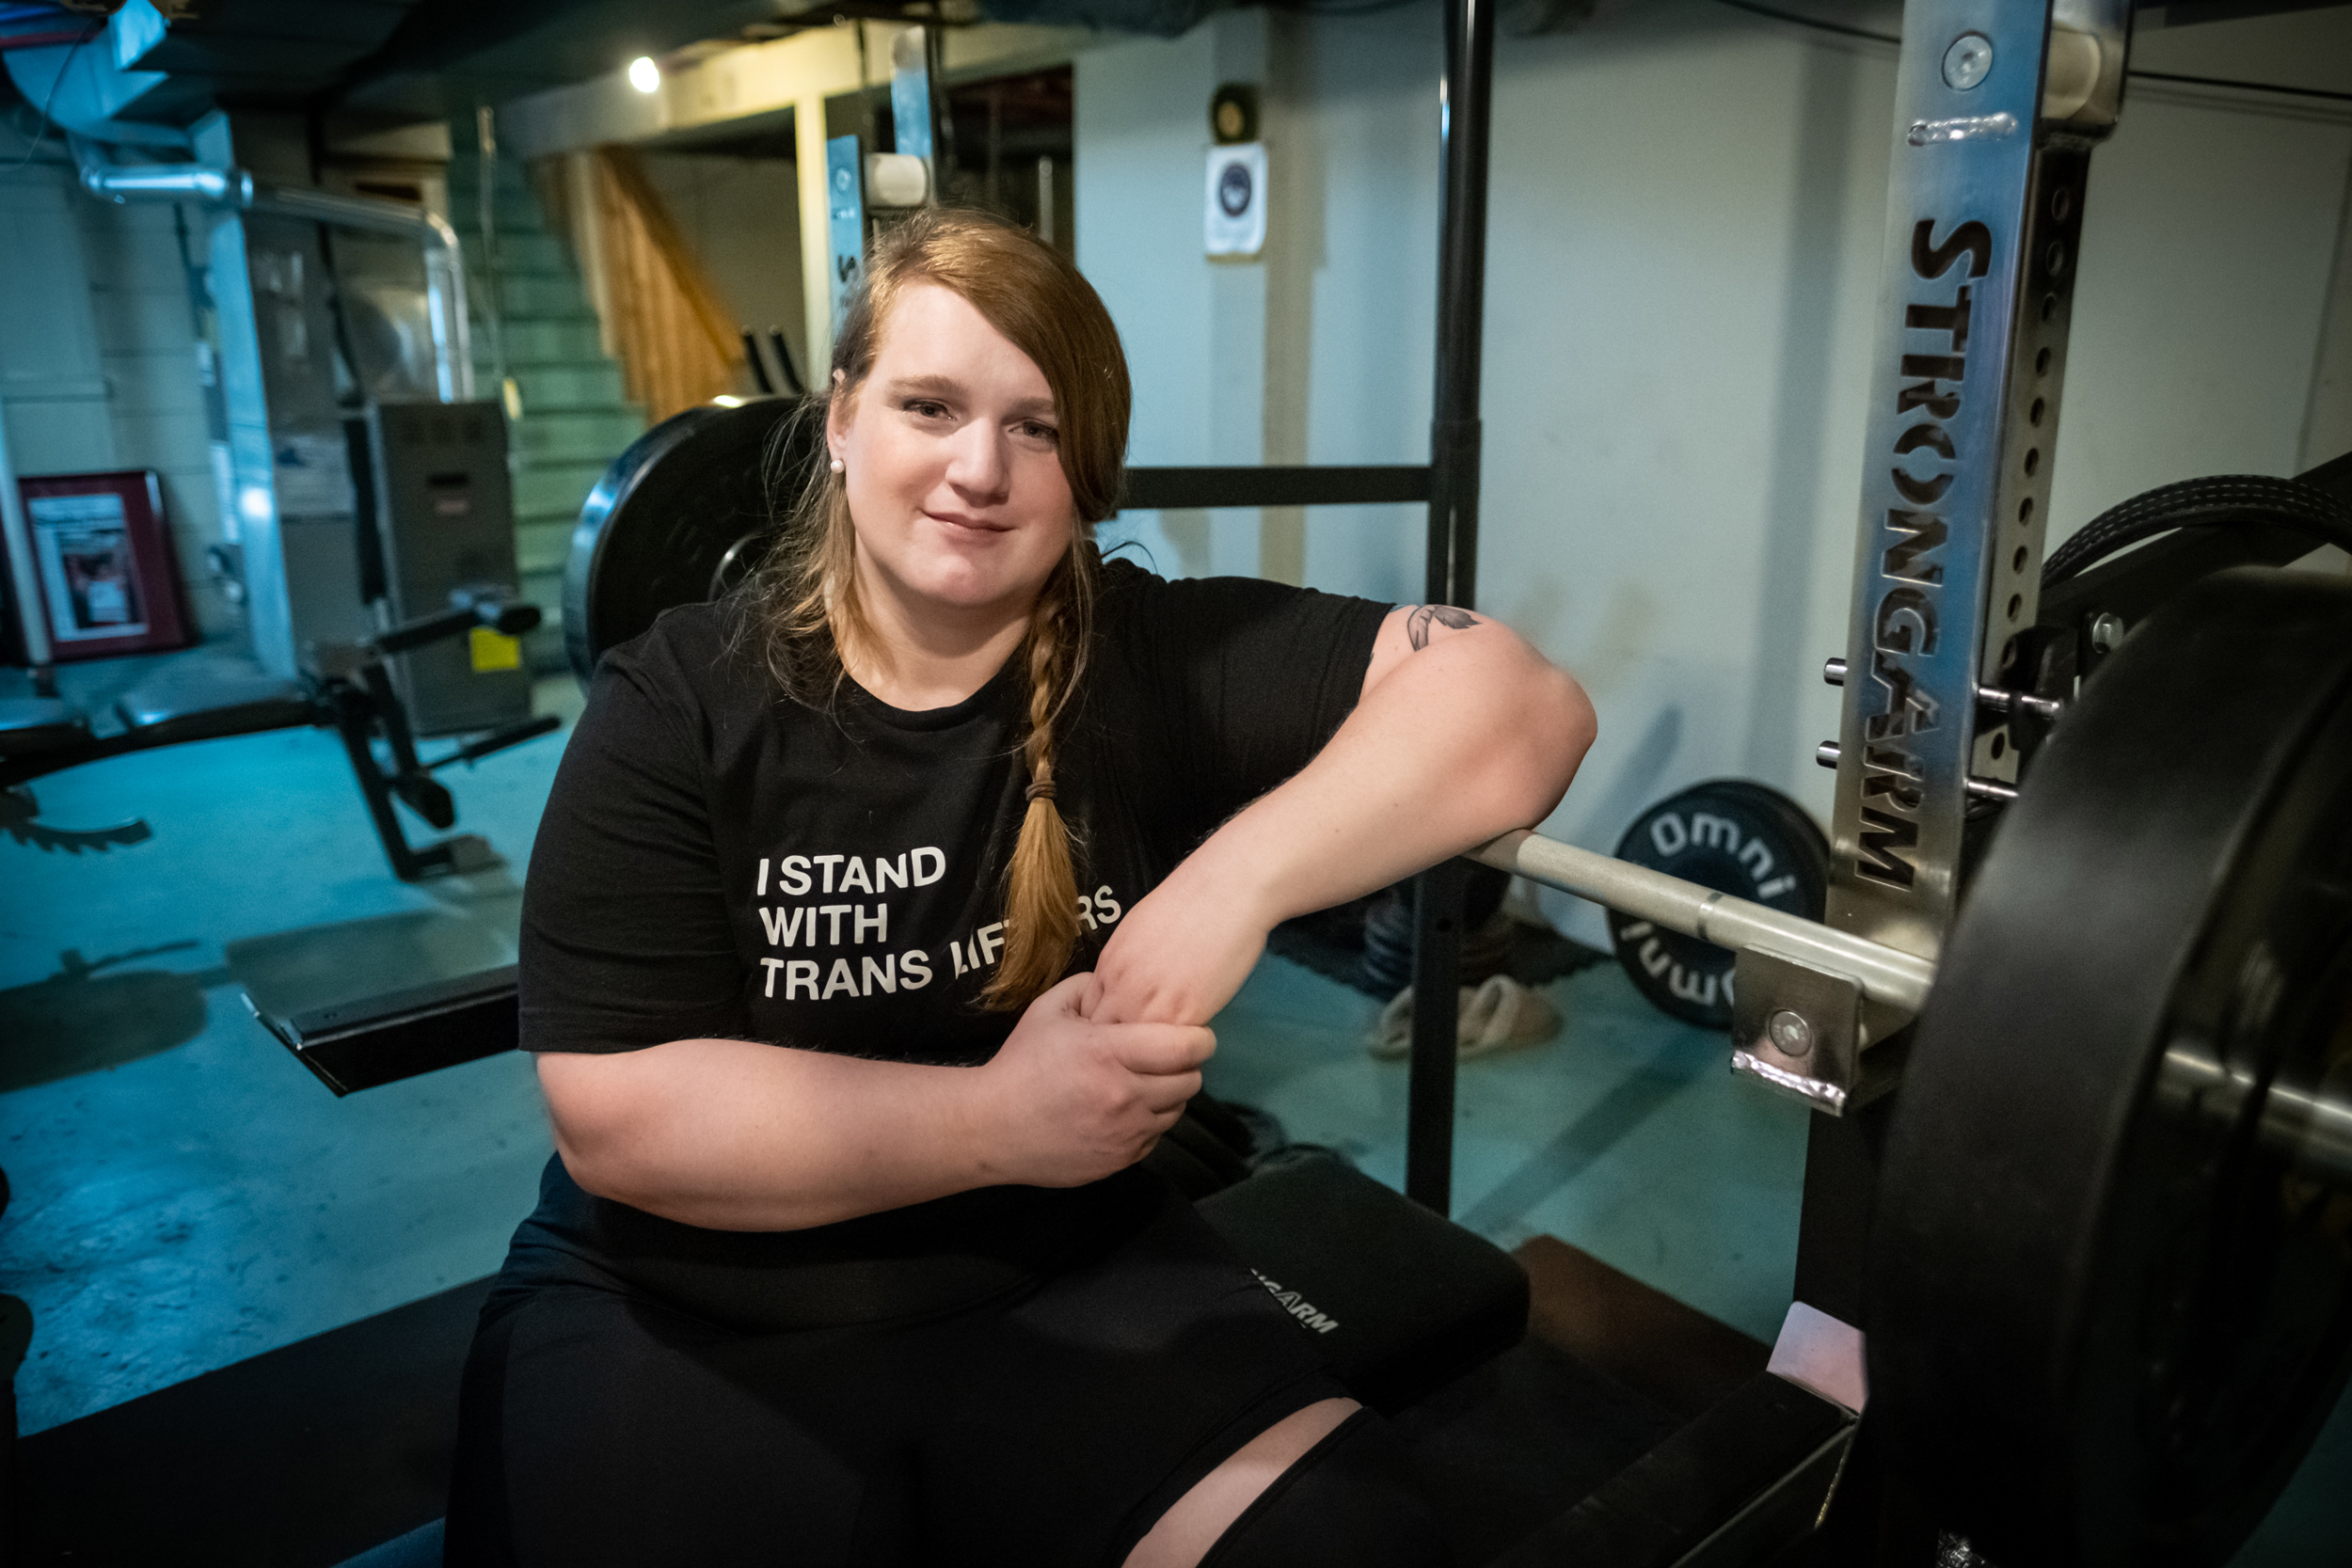 Stuck On The Sidelines A Transgender Powerlifter Fights For The Right To Compete